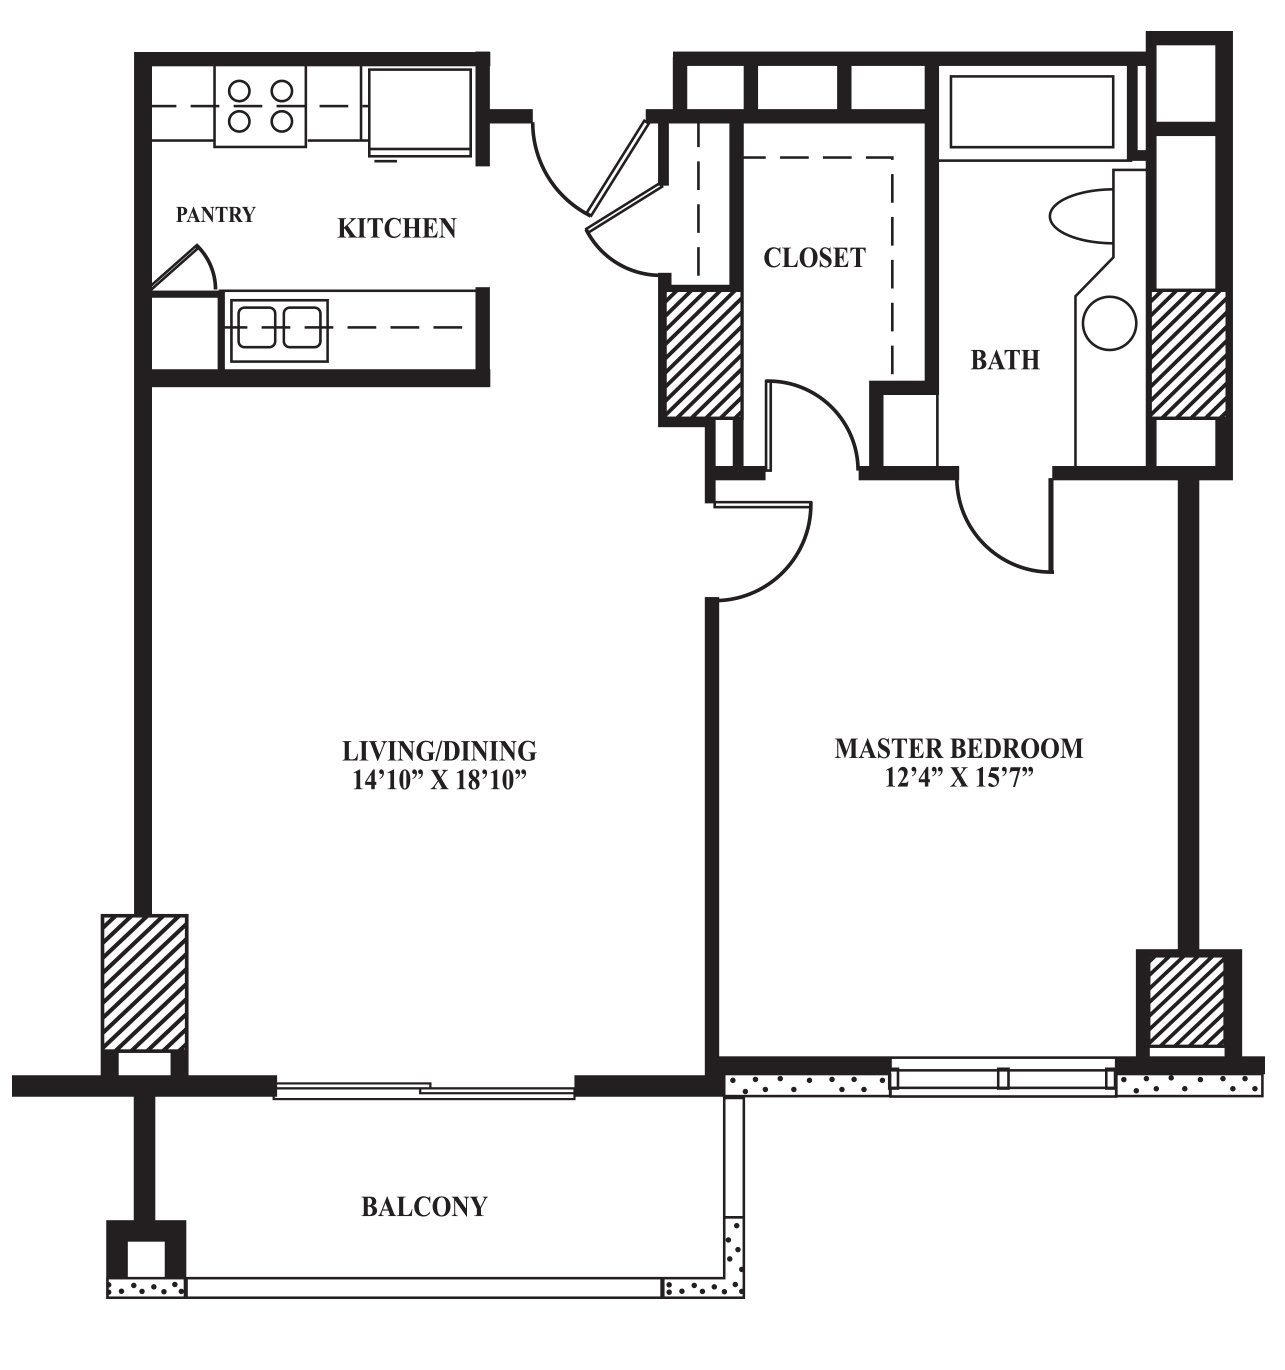 Bathroom with walk in closet floor plan 28 images for Master bathroom floor plans with walk in closet